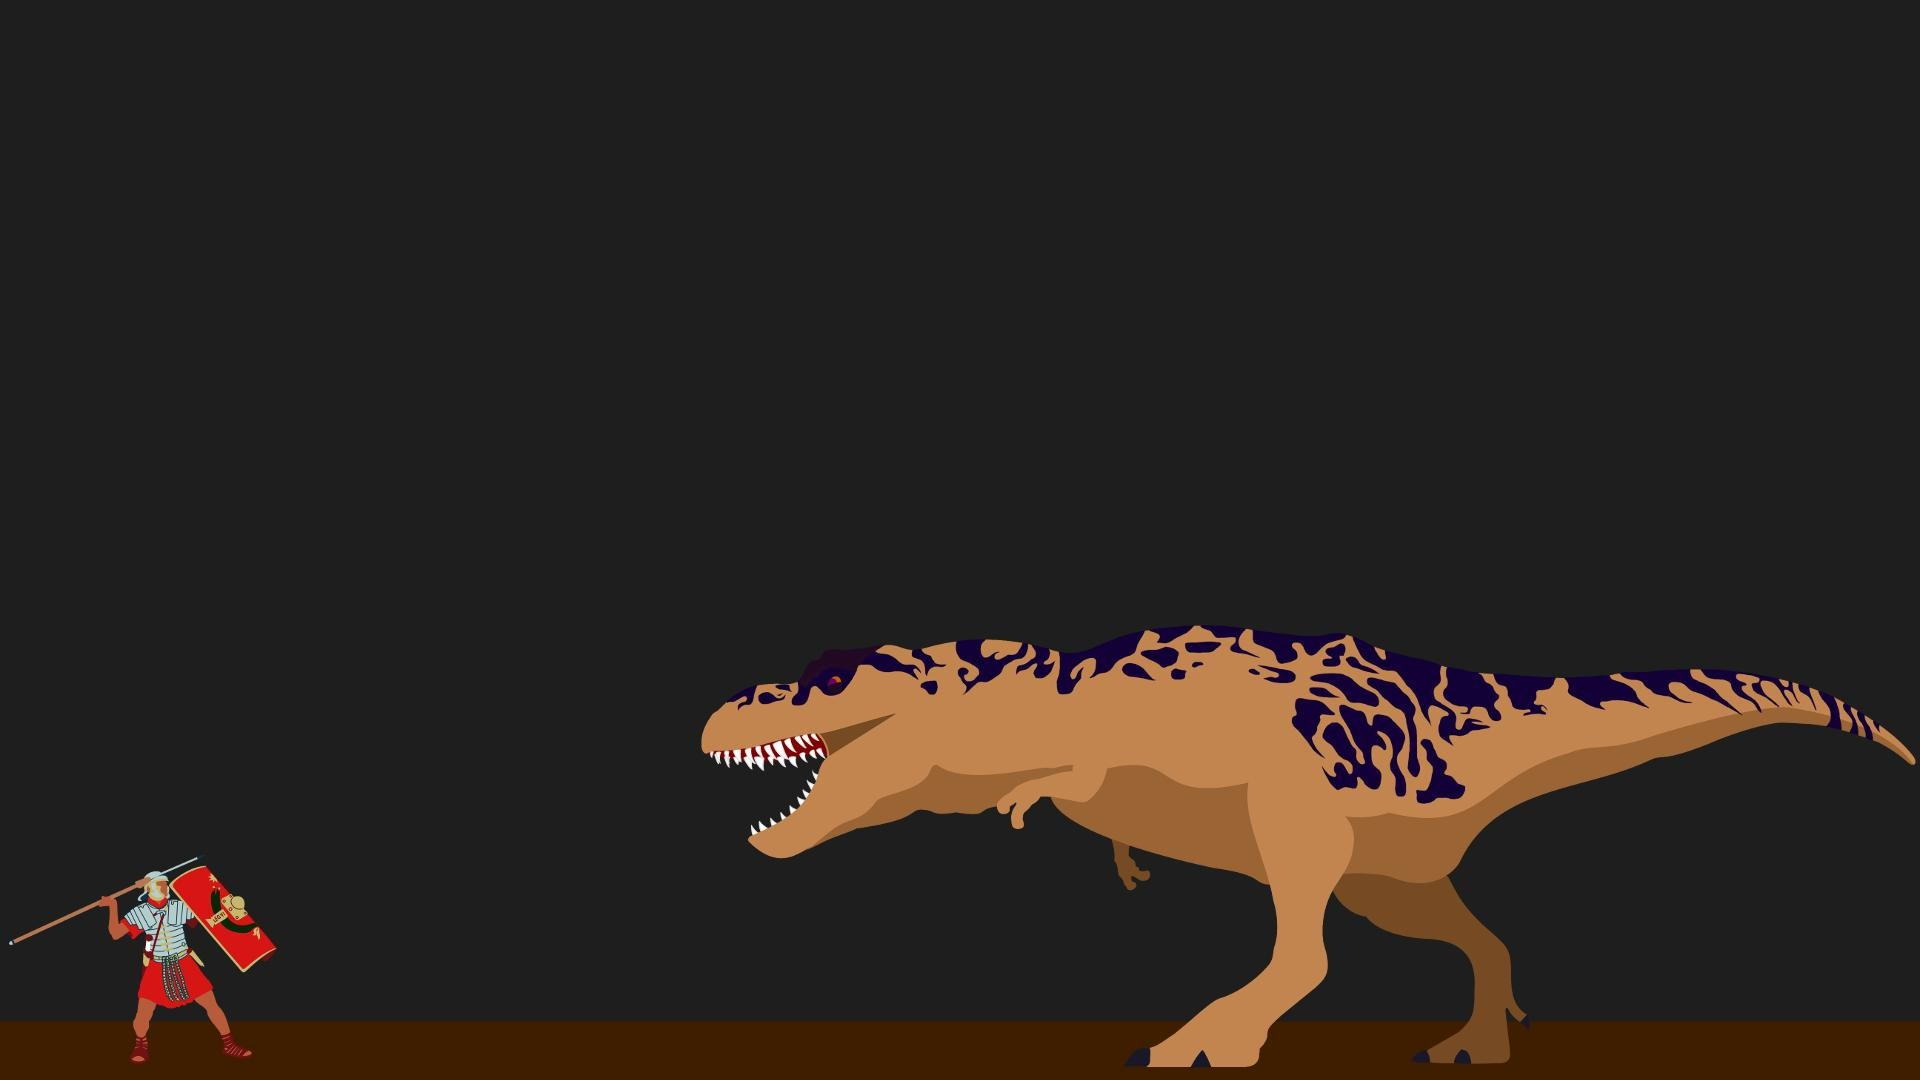 1920x1080 Simplistic Roman Vs T-Rex (OC) [1920 x 1080] Higher Resolution